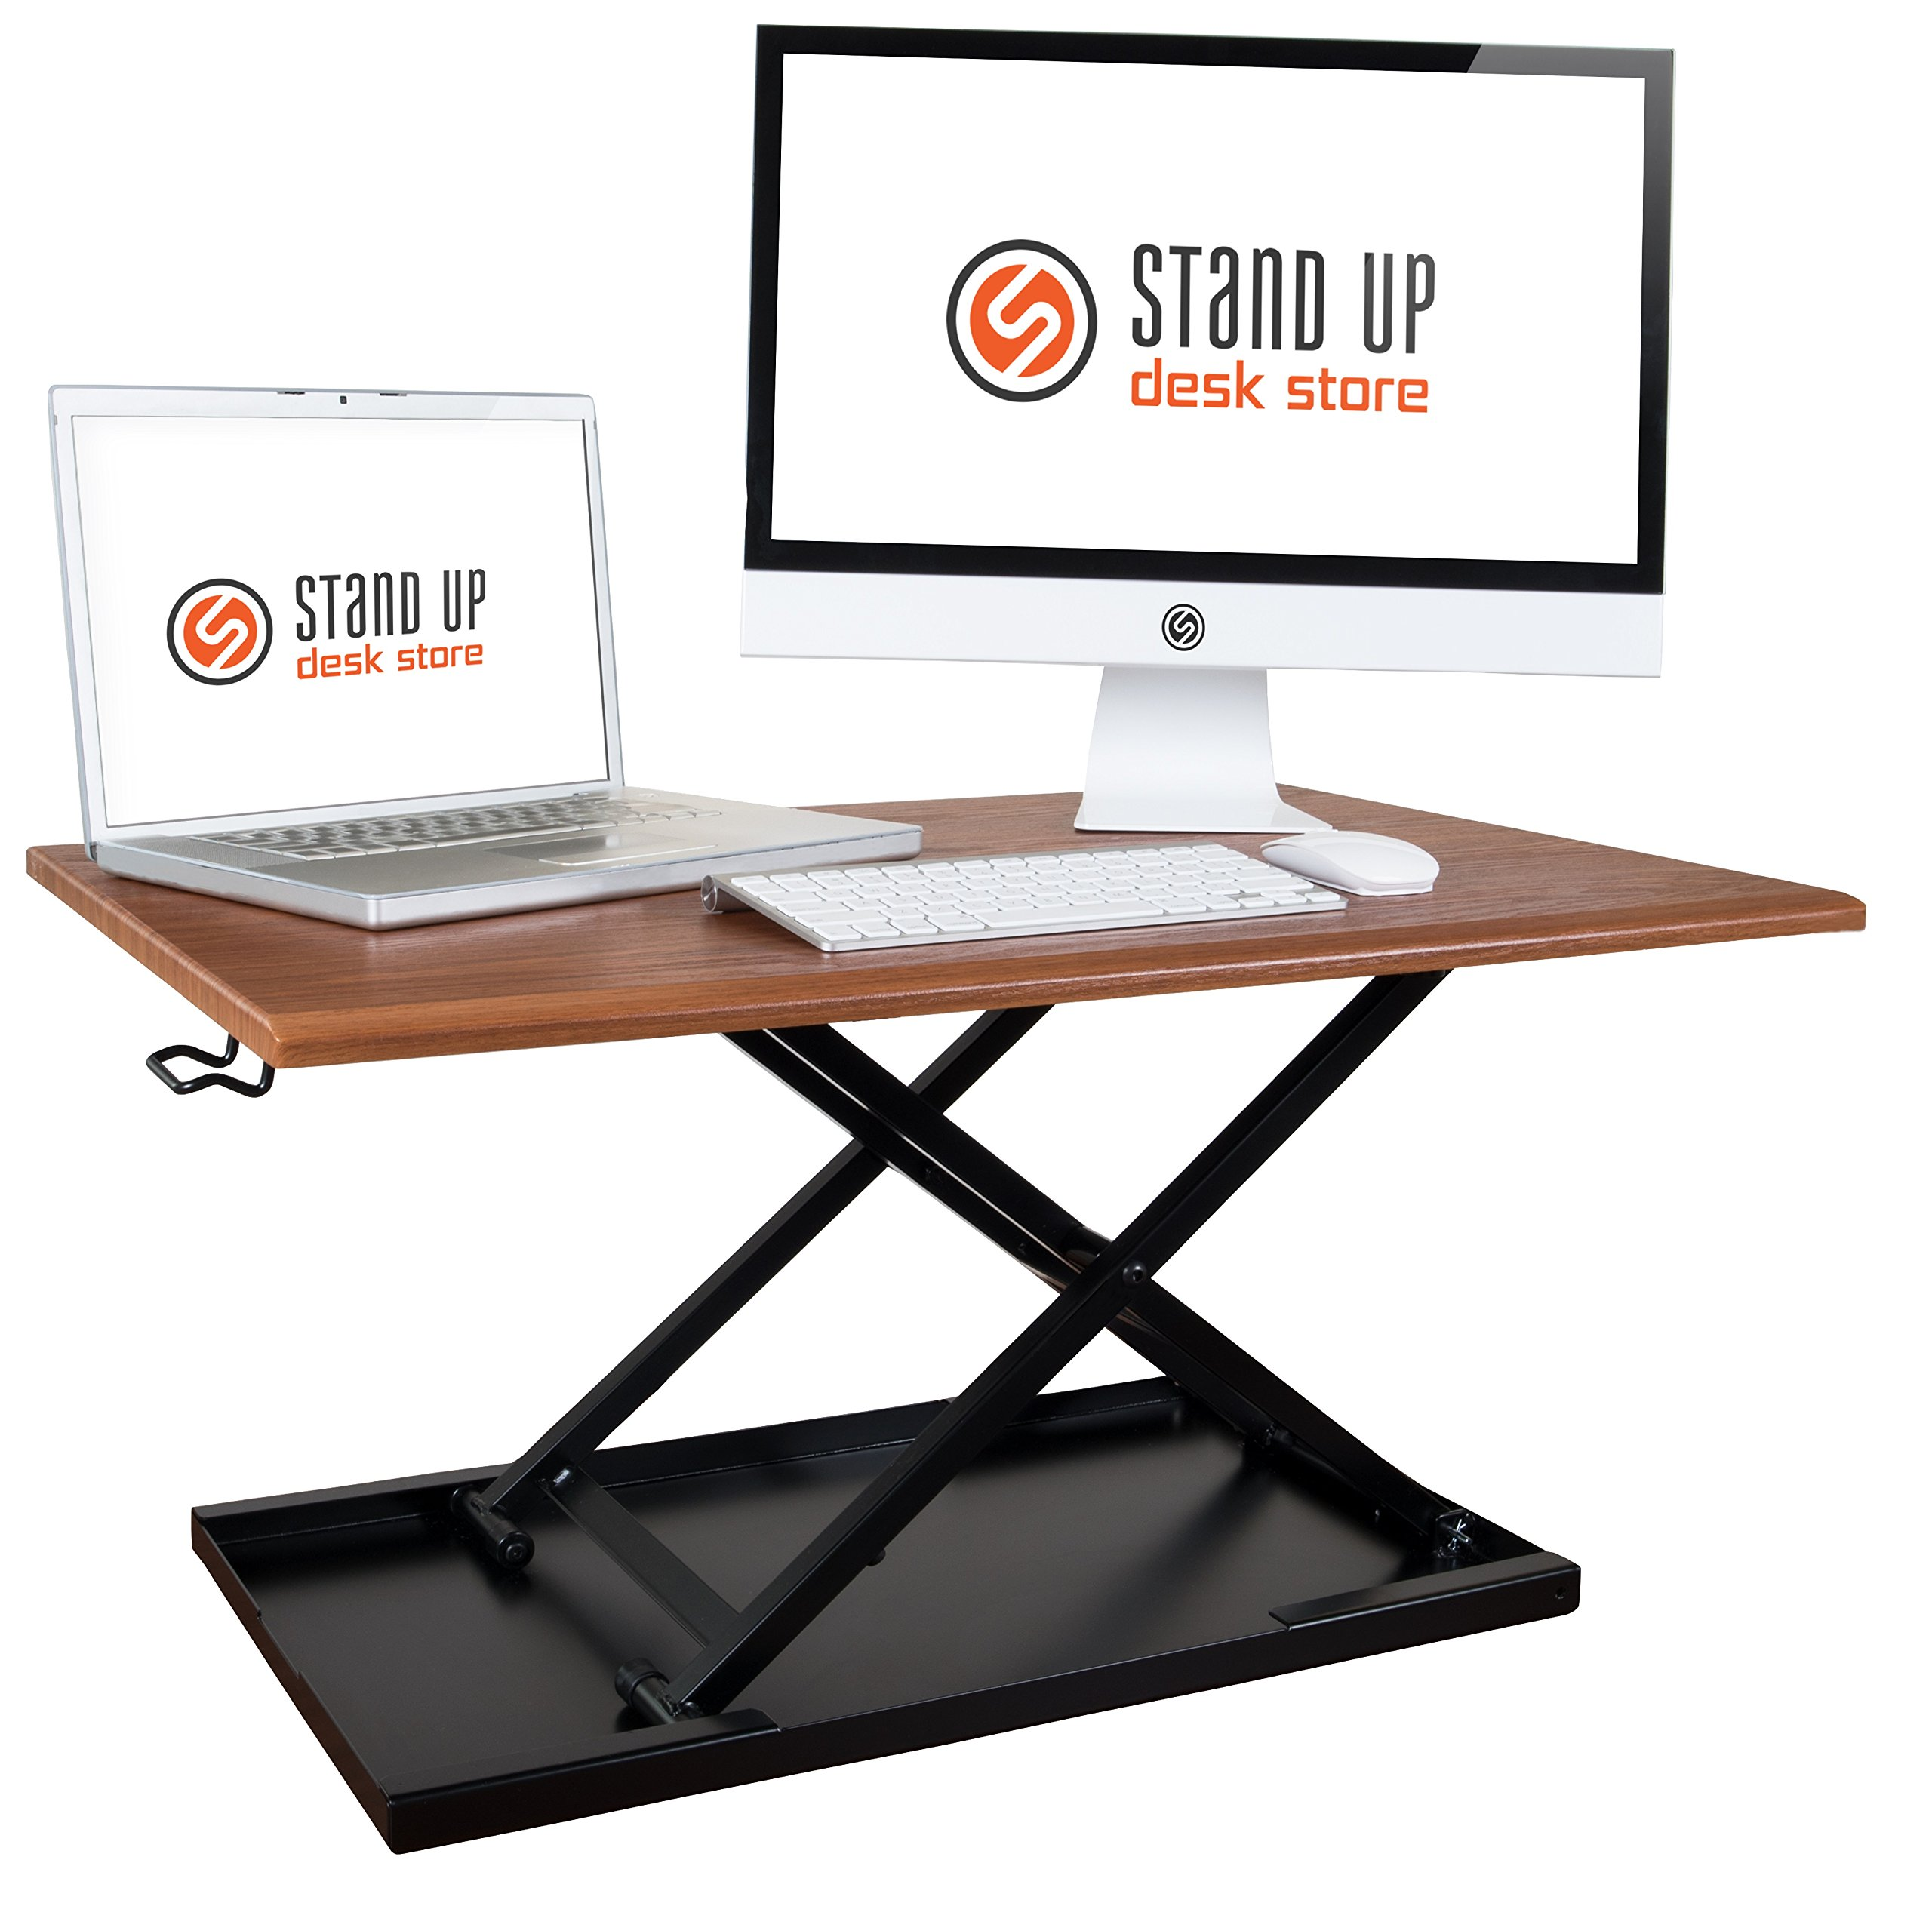 work up of system string unique stand store desk